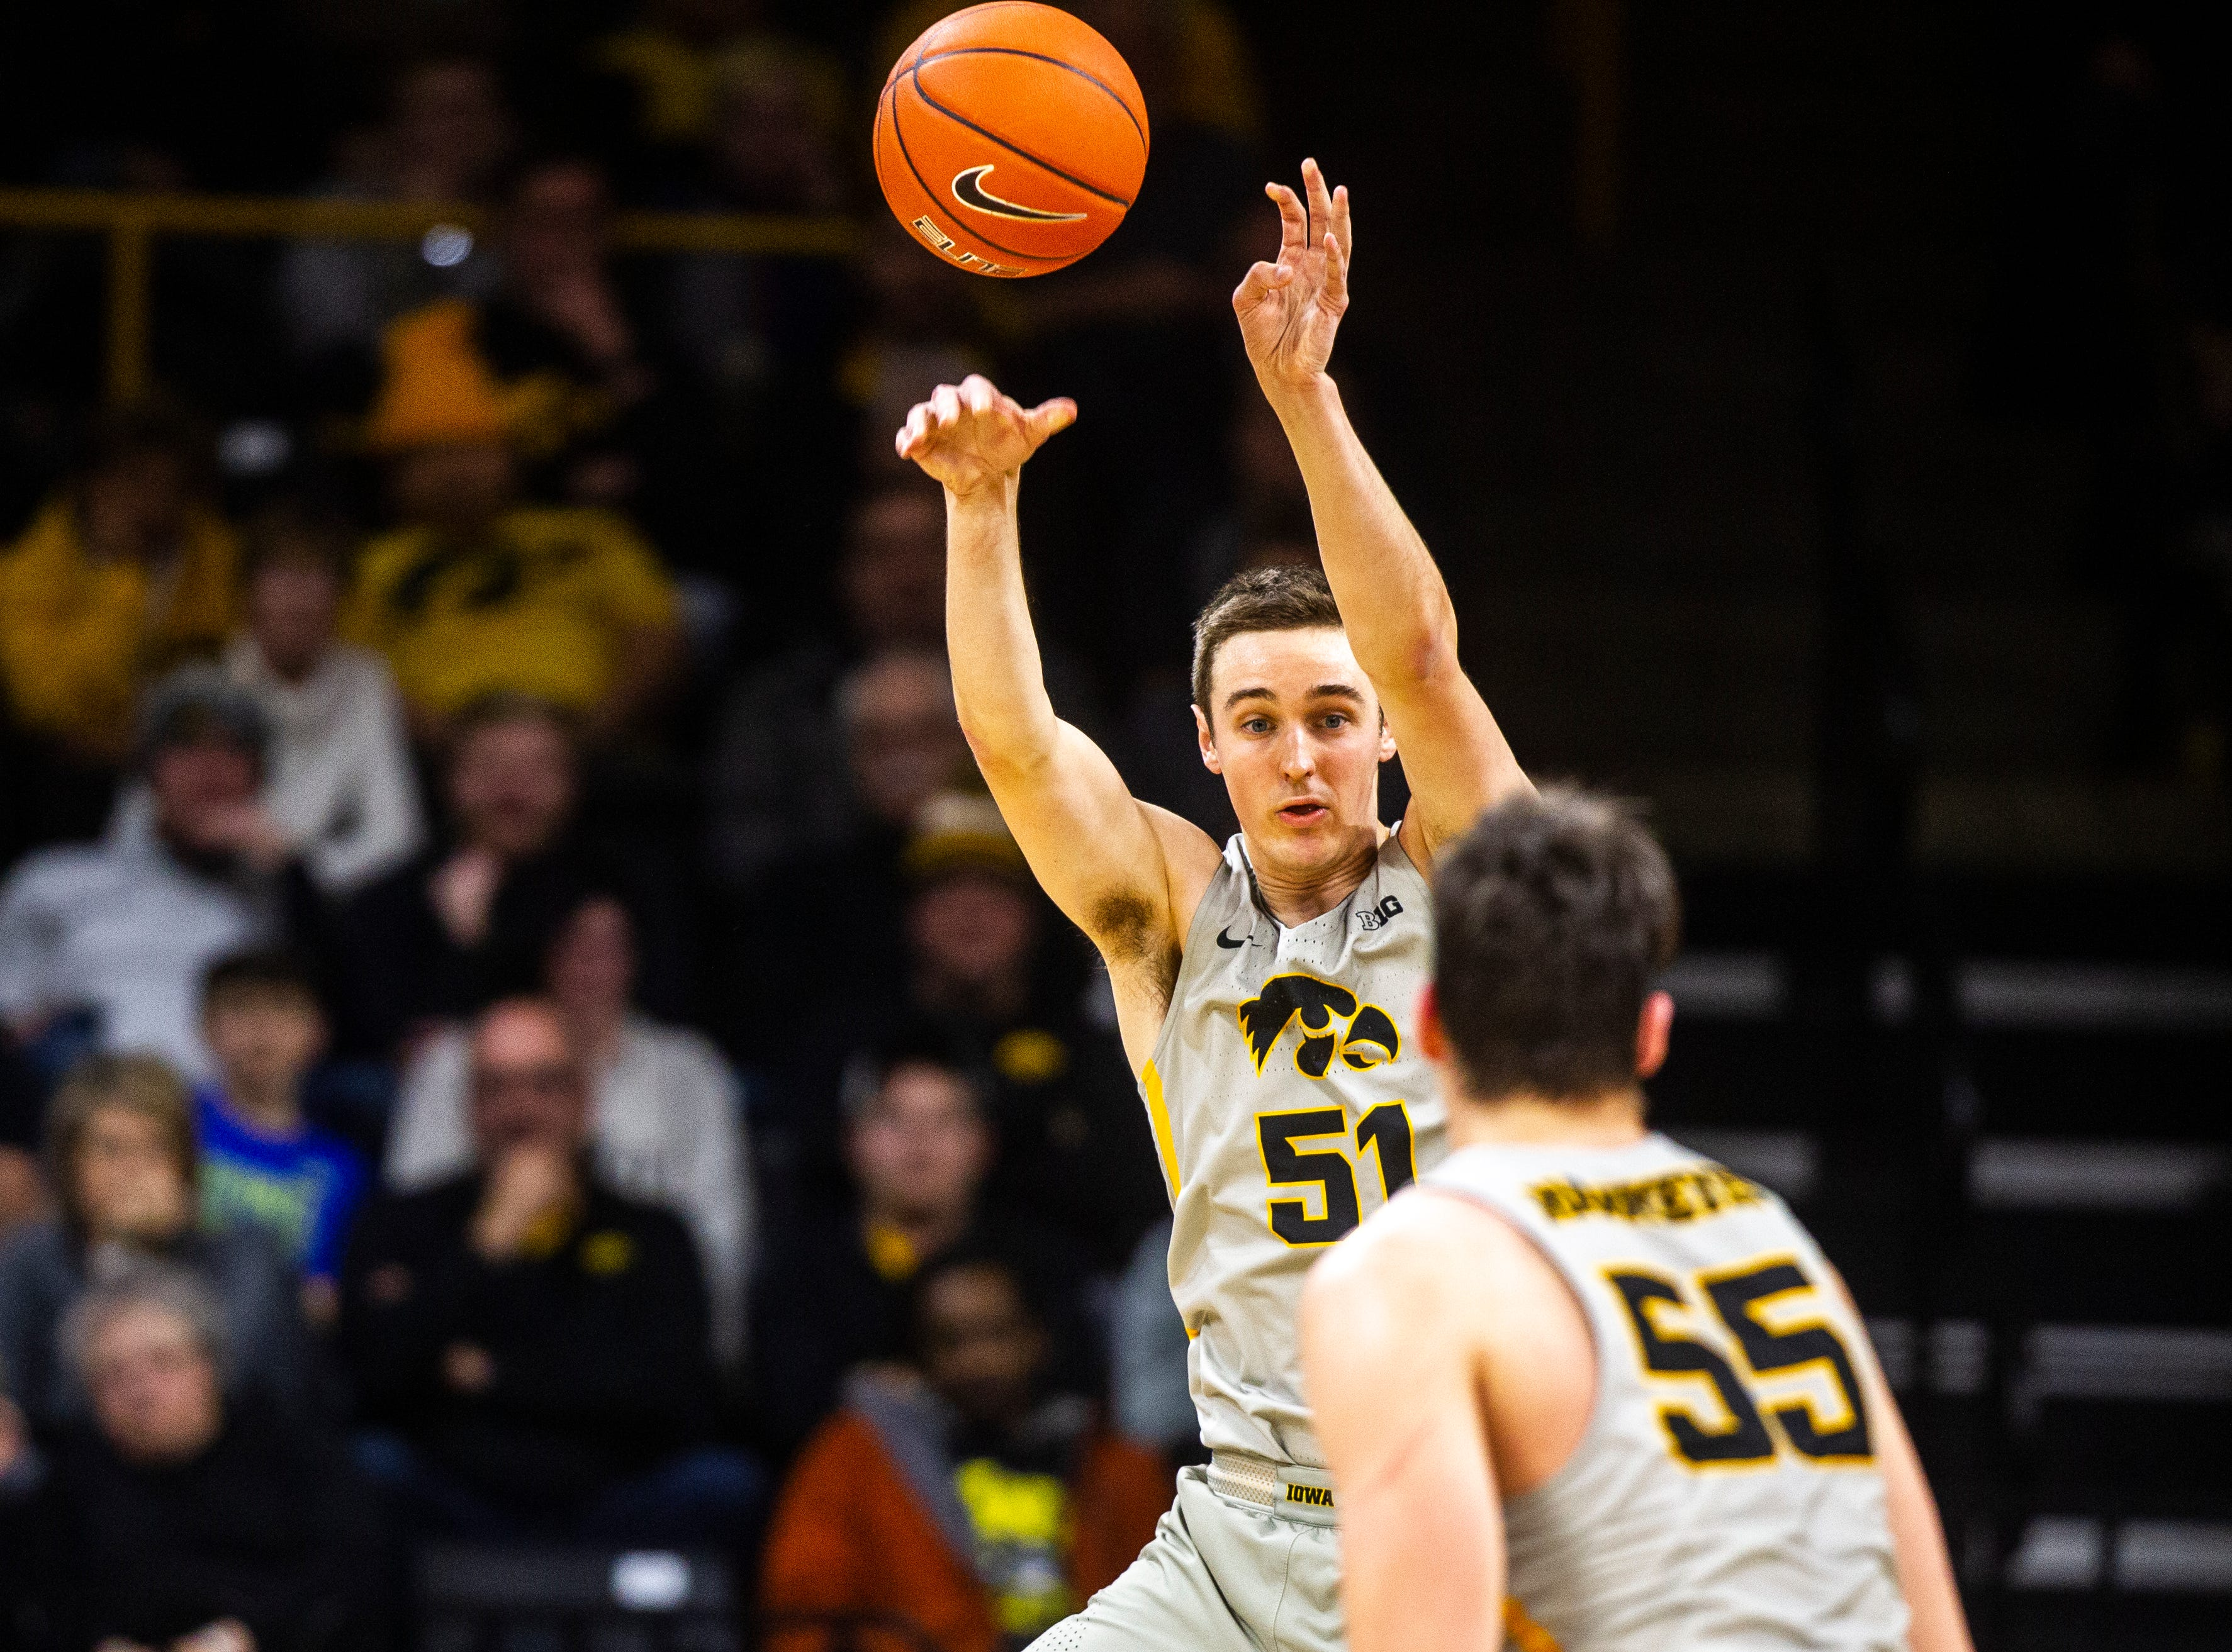 Iowa forward Nicholas Baer (51) shoots a pass out to Iowa forward Luka Garza (55) during a NCAA Big Ten Conference men's basketball game on Thursday, Jan. 24, 2019, at Carver-Hawkeye Arena in Iowa City, Iowa.